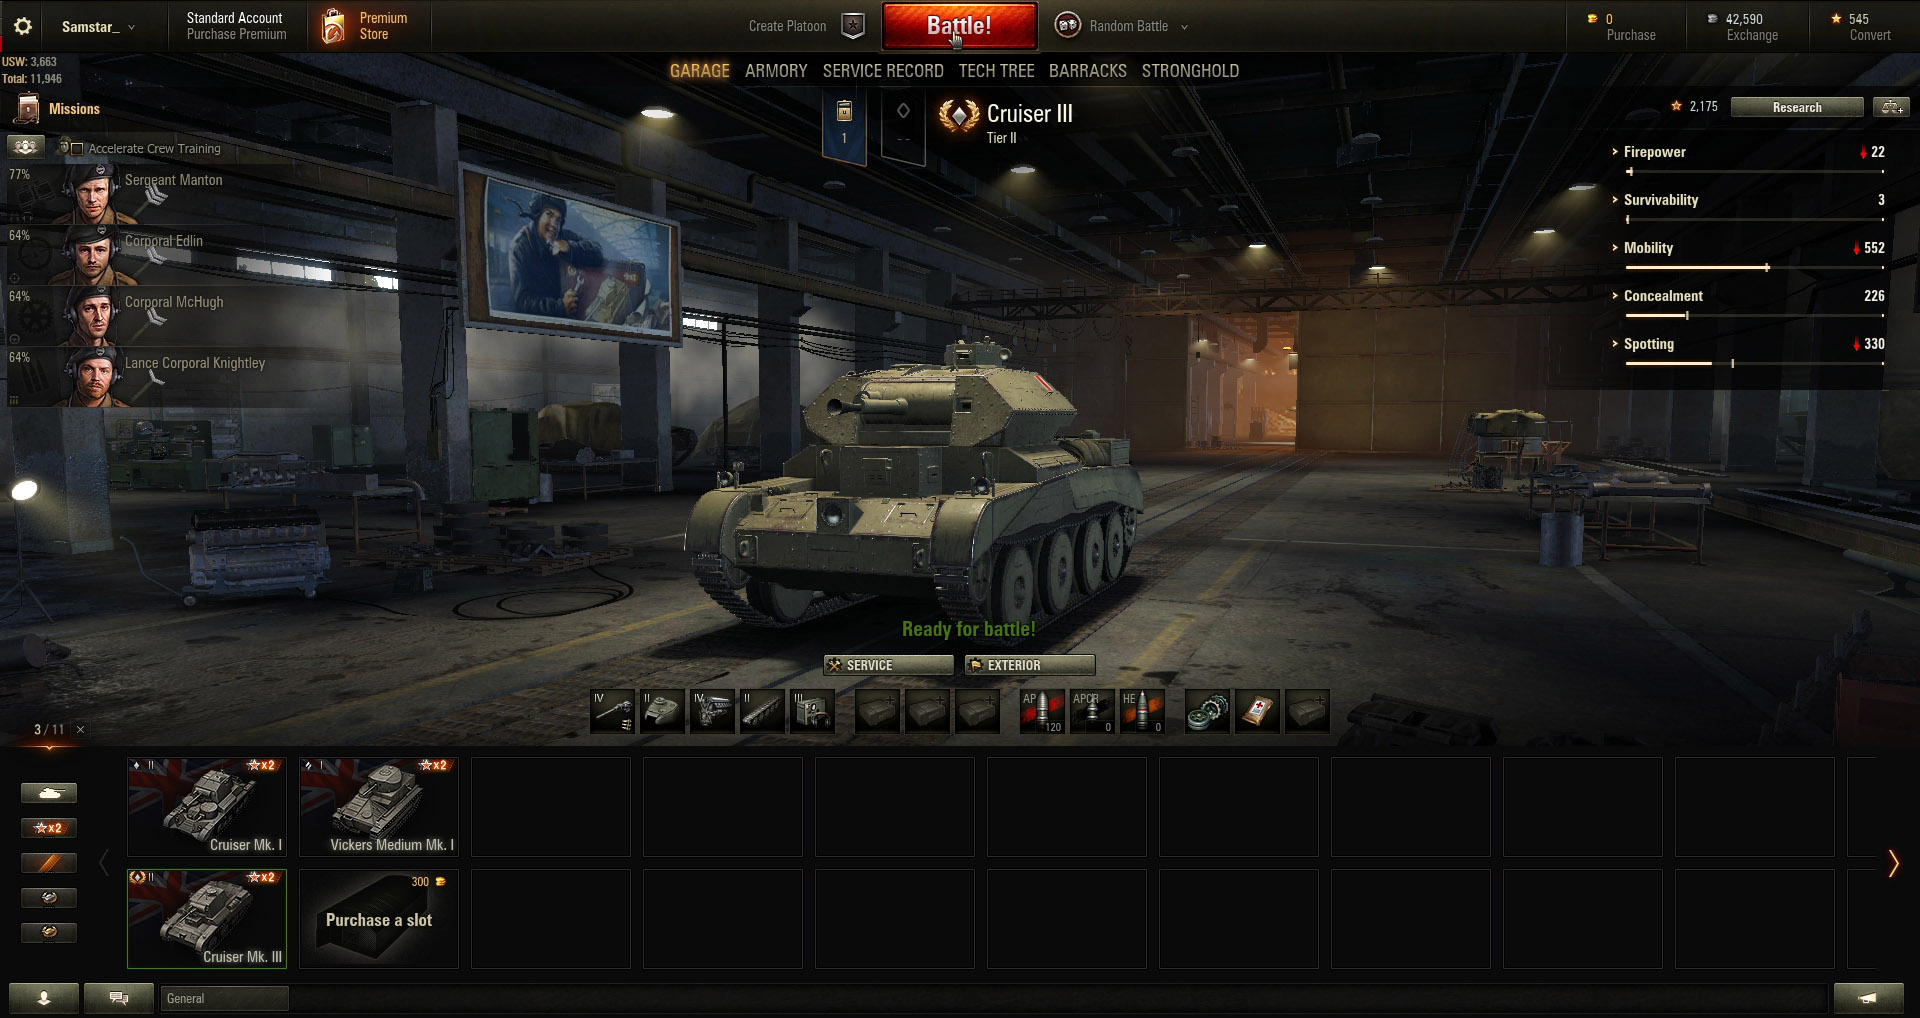 Kick back, have some fun, and just start playing World of Tanks to help you improve!